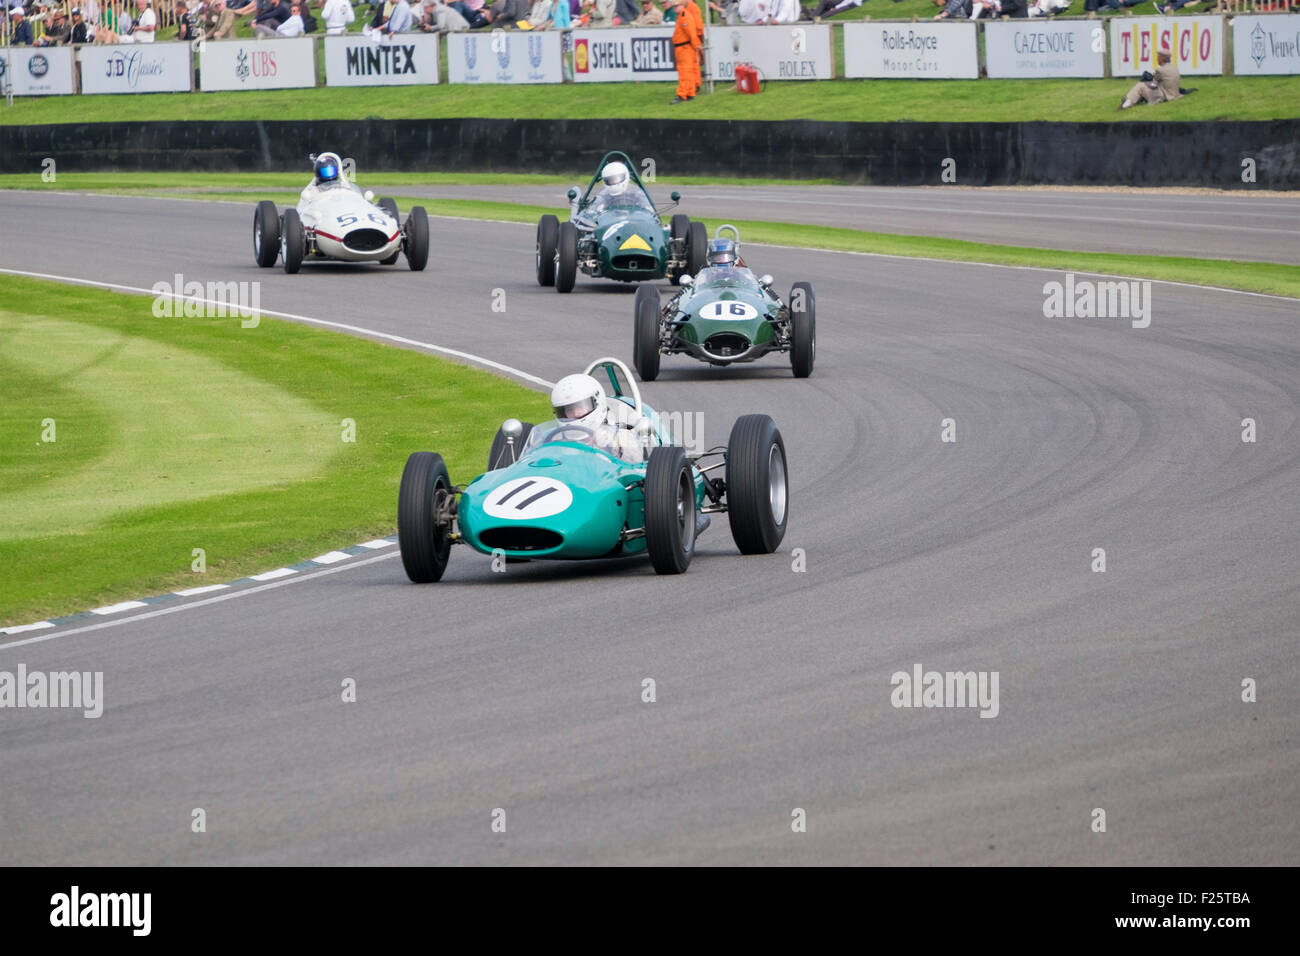 fast and furious motor sport racing action on the circuit at the 2015 goodwood revival meeting. Stock Photo